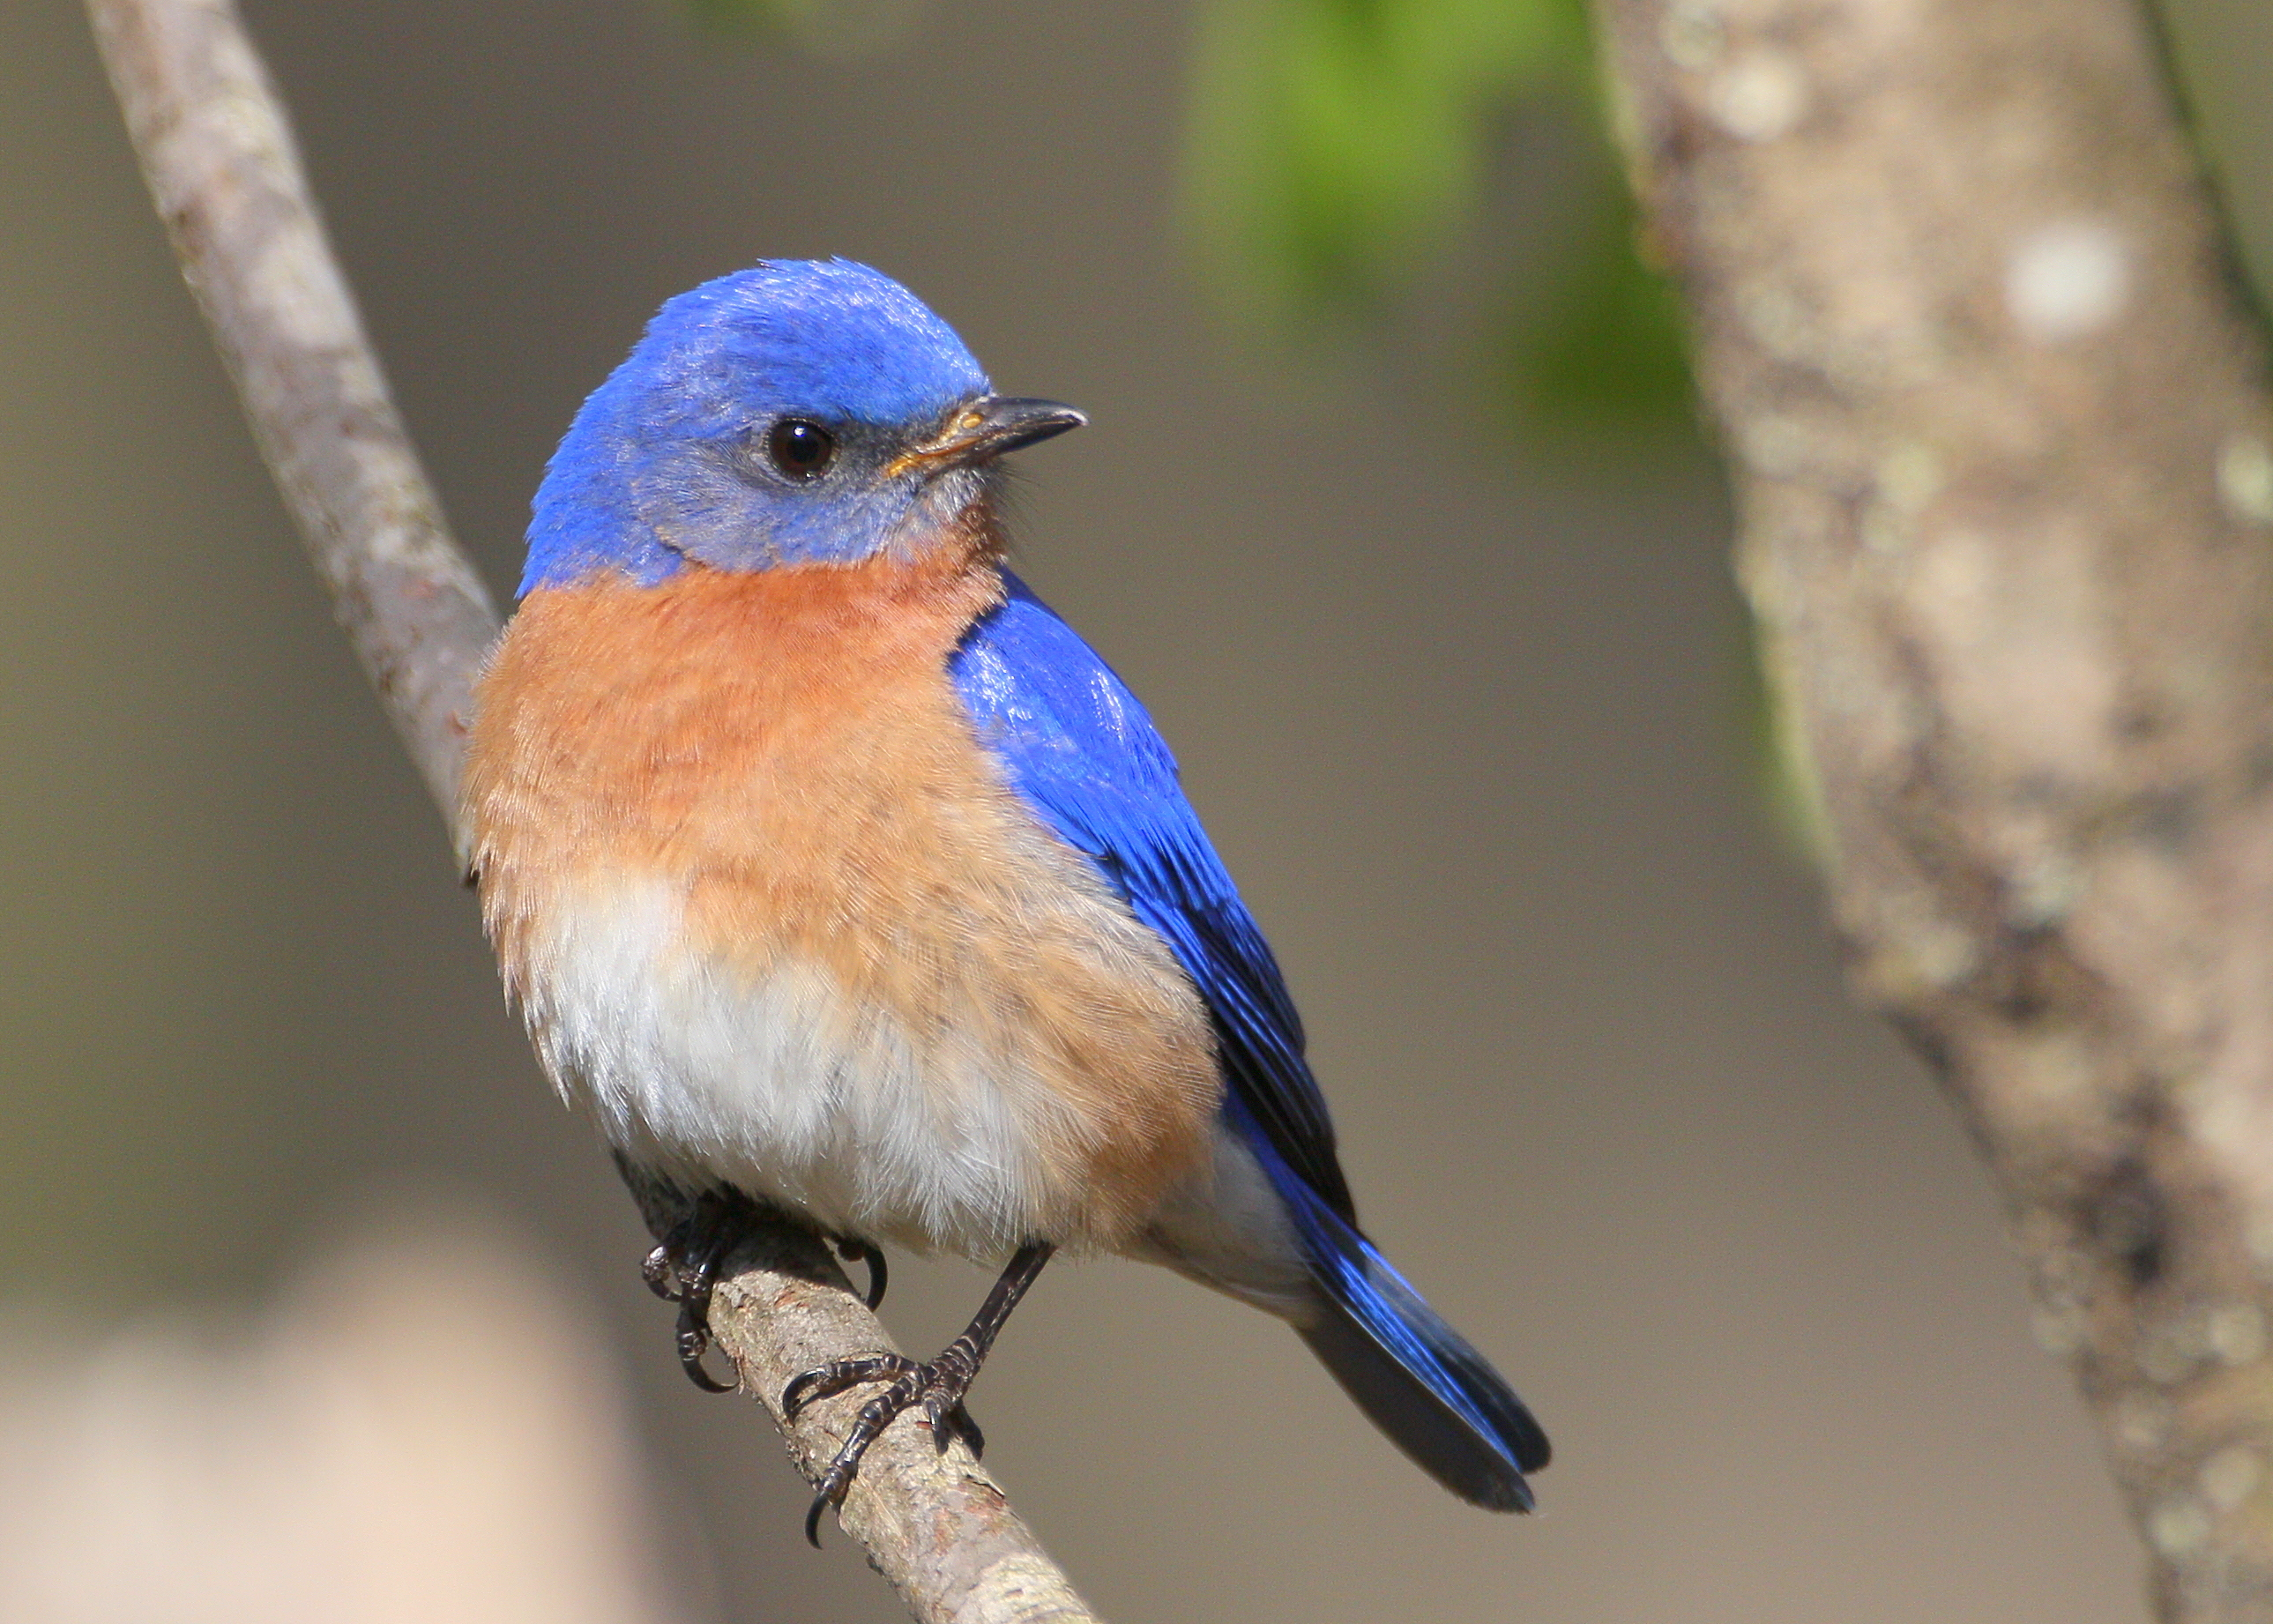 HQ Eastern Bluebird Wallpapers | File 4023.43Kb